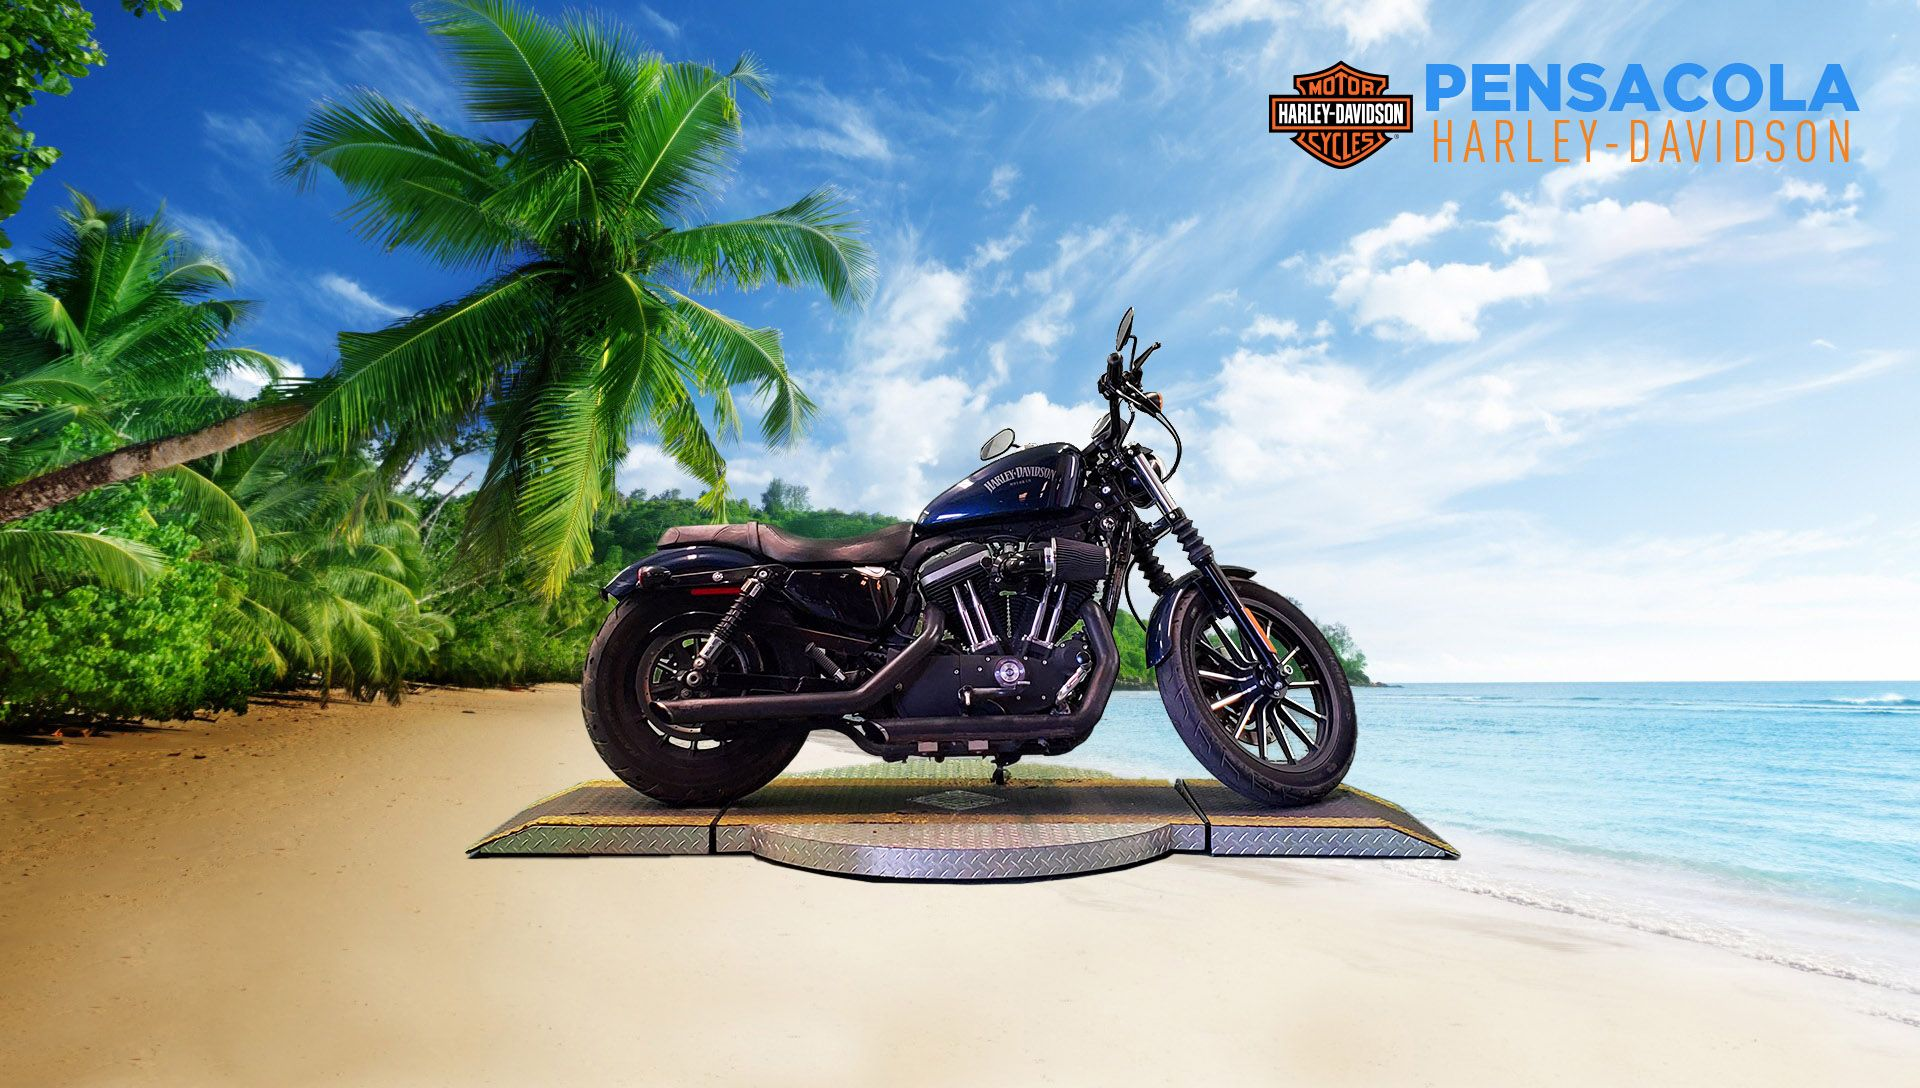 Pre-Owned 2012 Harley-Davidson Iron 883 XL883N